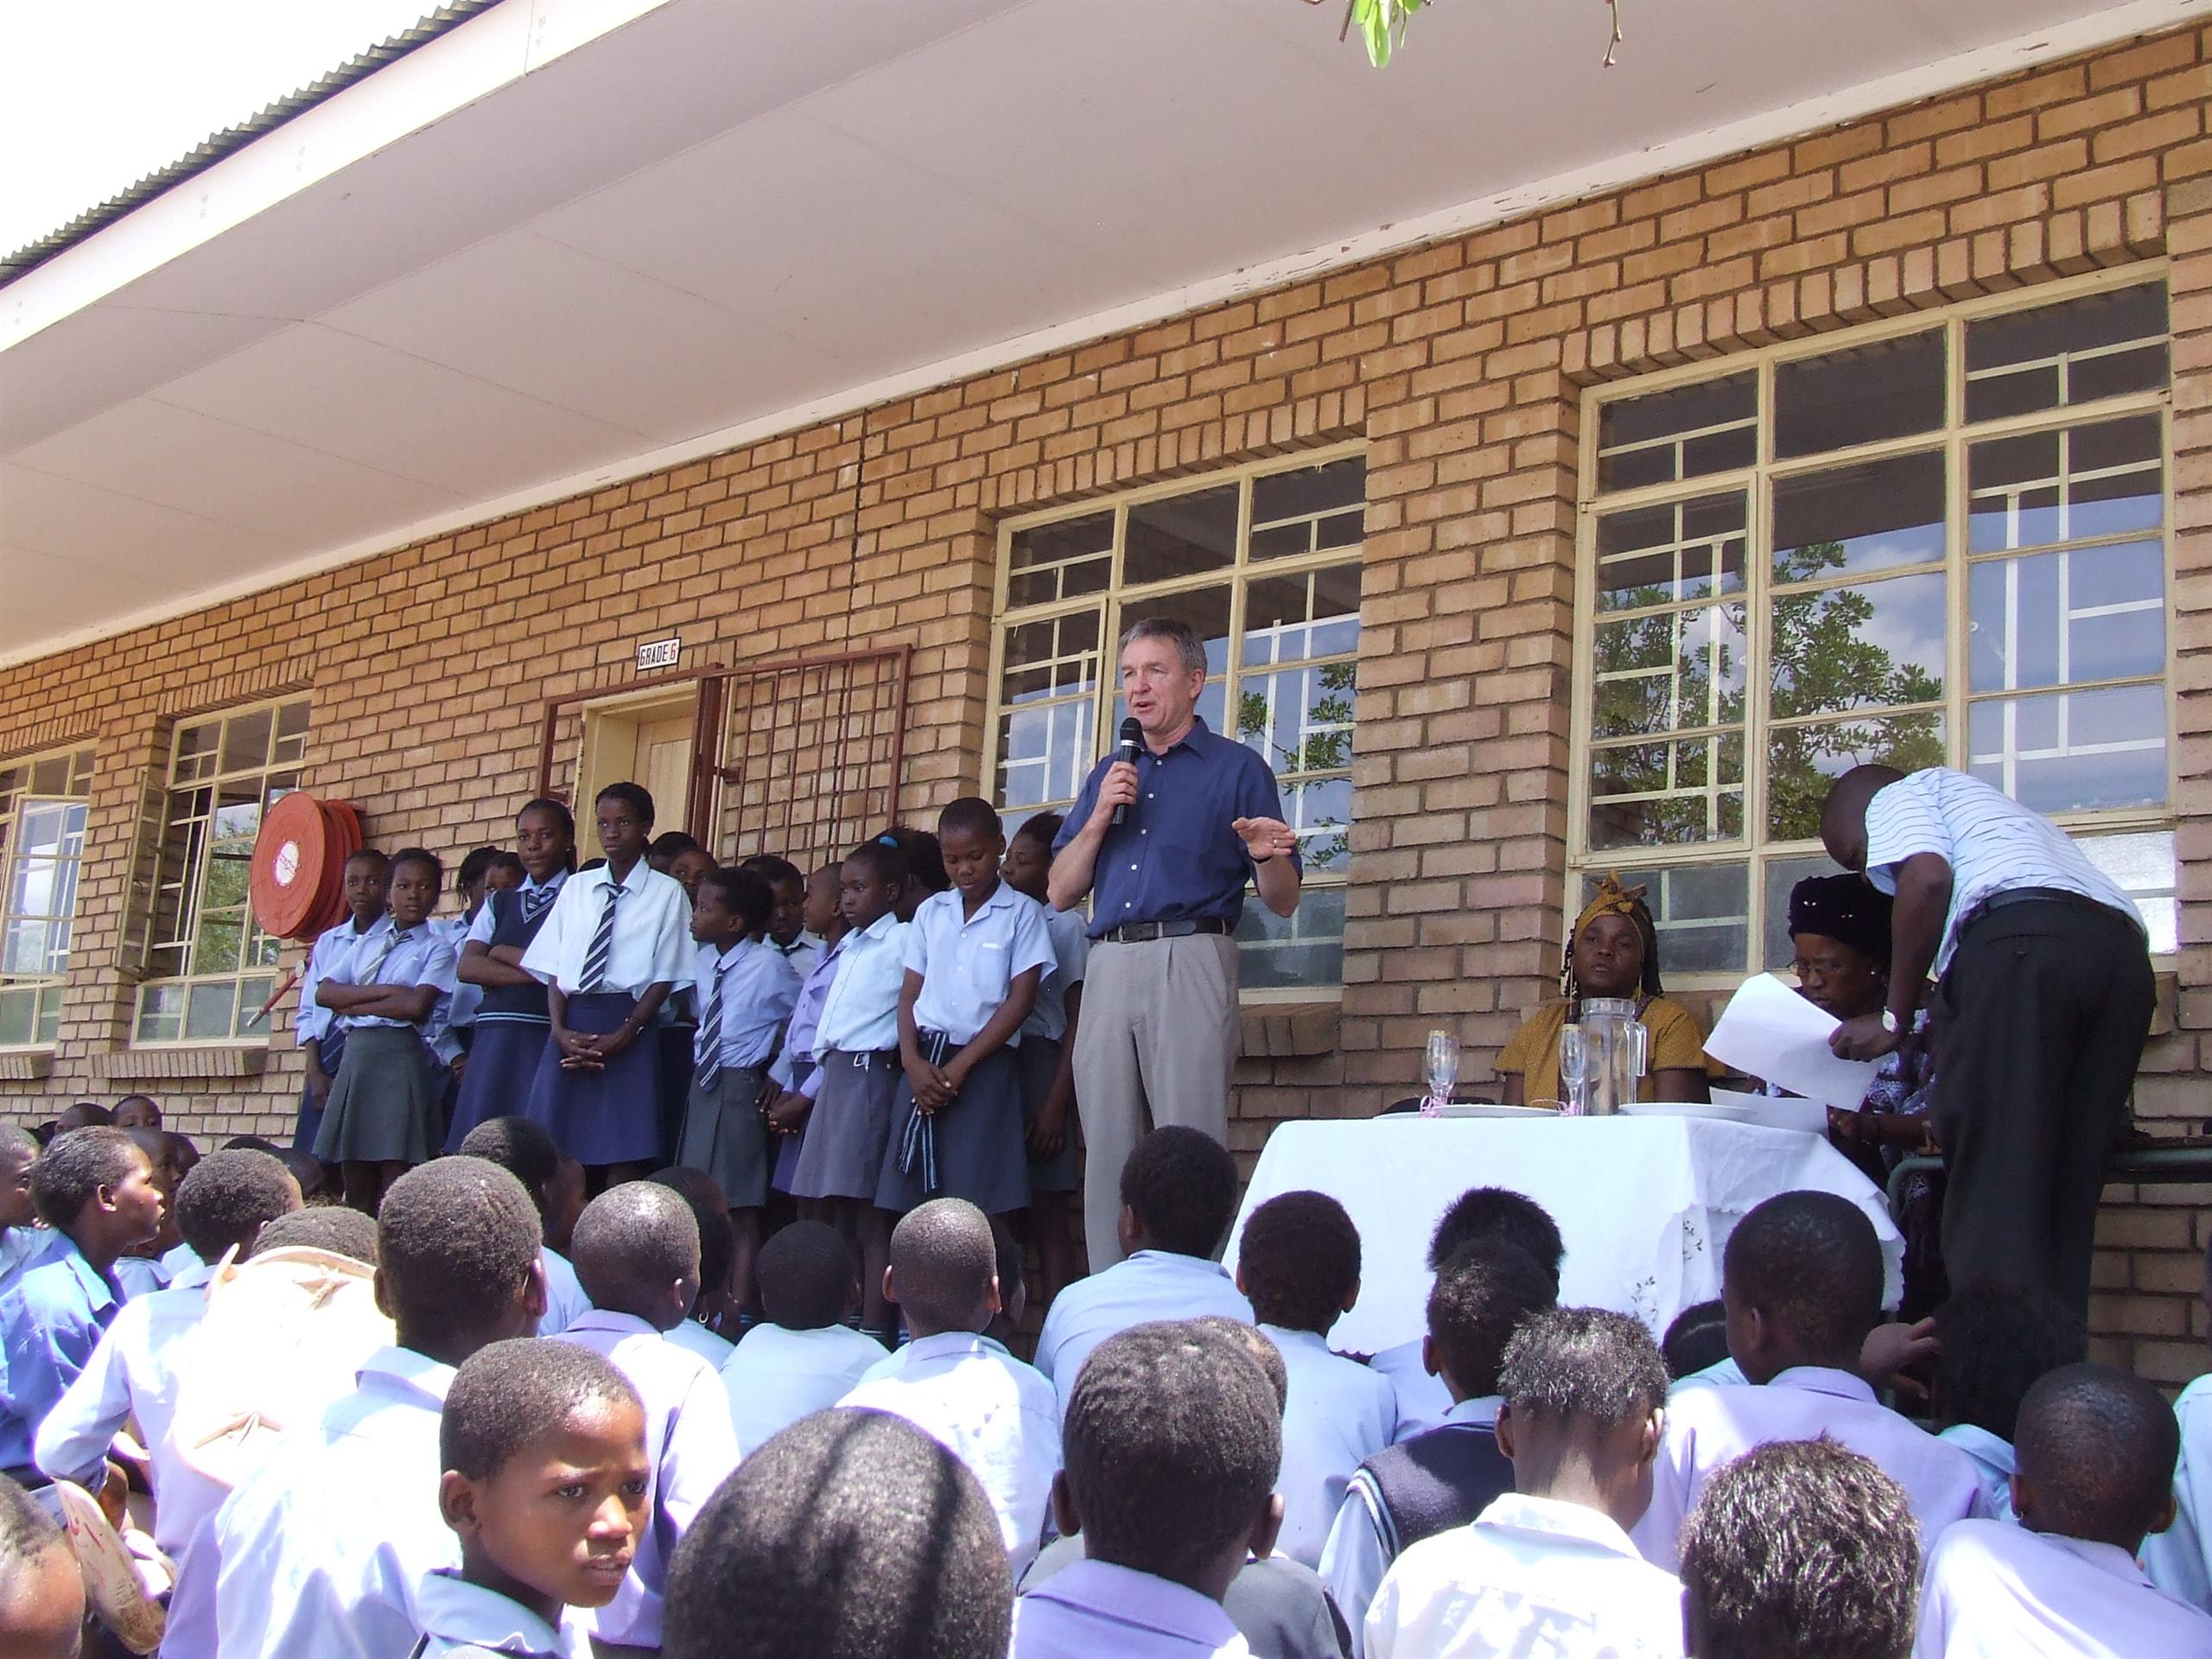 Ron is South Africa talking to a group of children at a primary school.